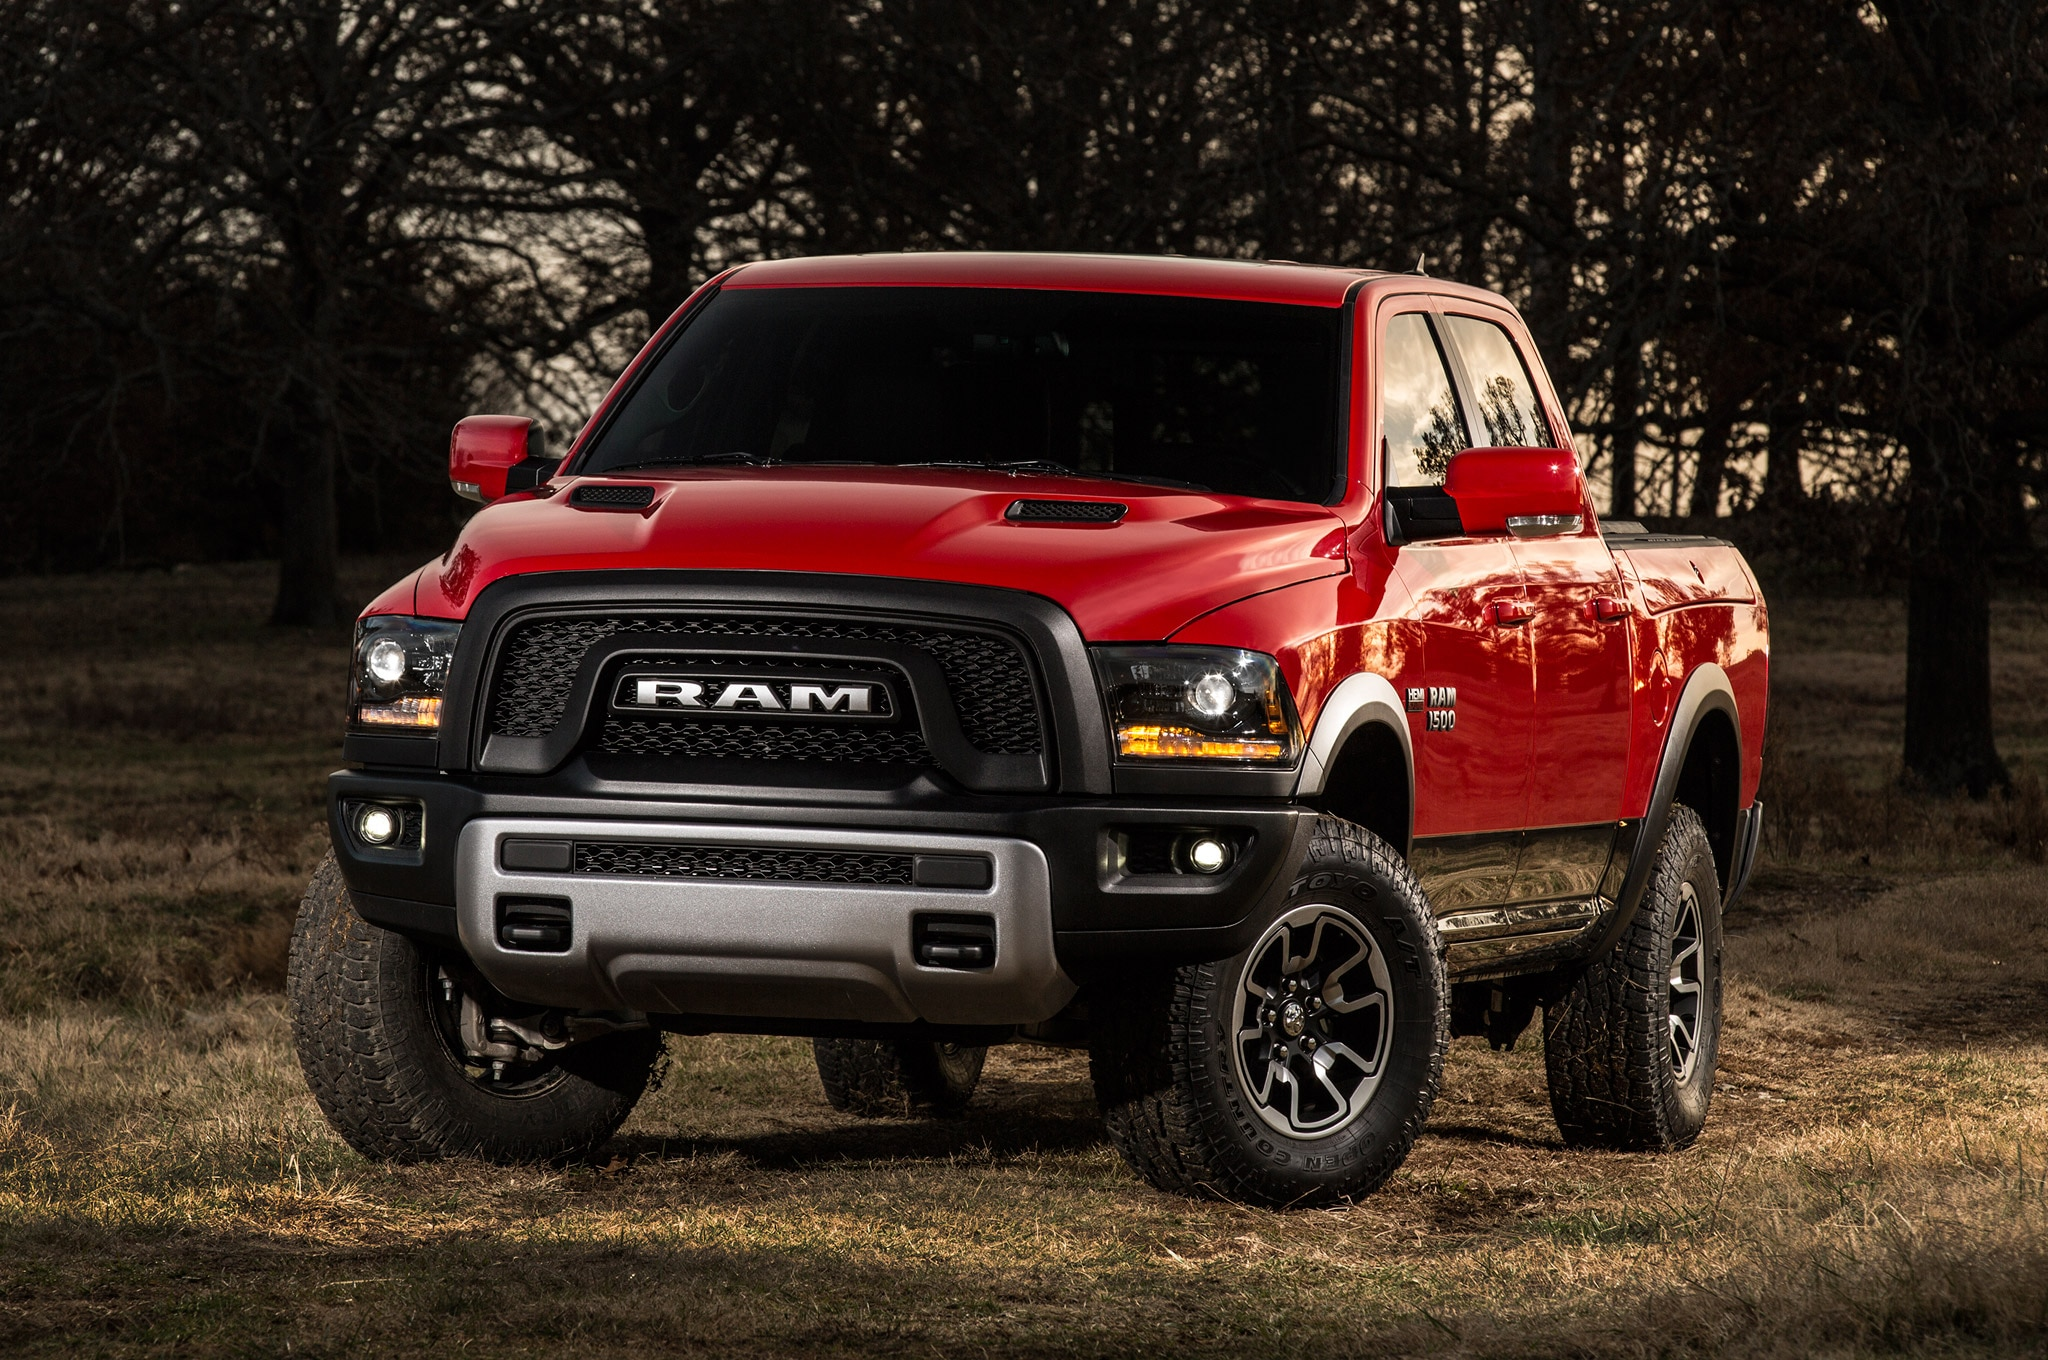 2015 ram 1500 rebel off road trim debuts in detroit. Black Bedroom Furniture Sets. Home Design Ideas